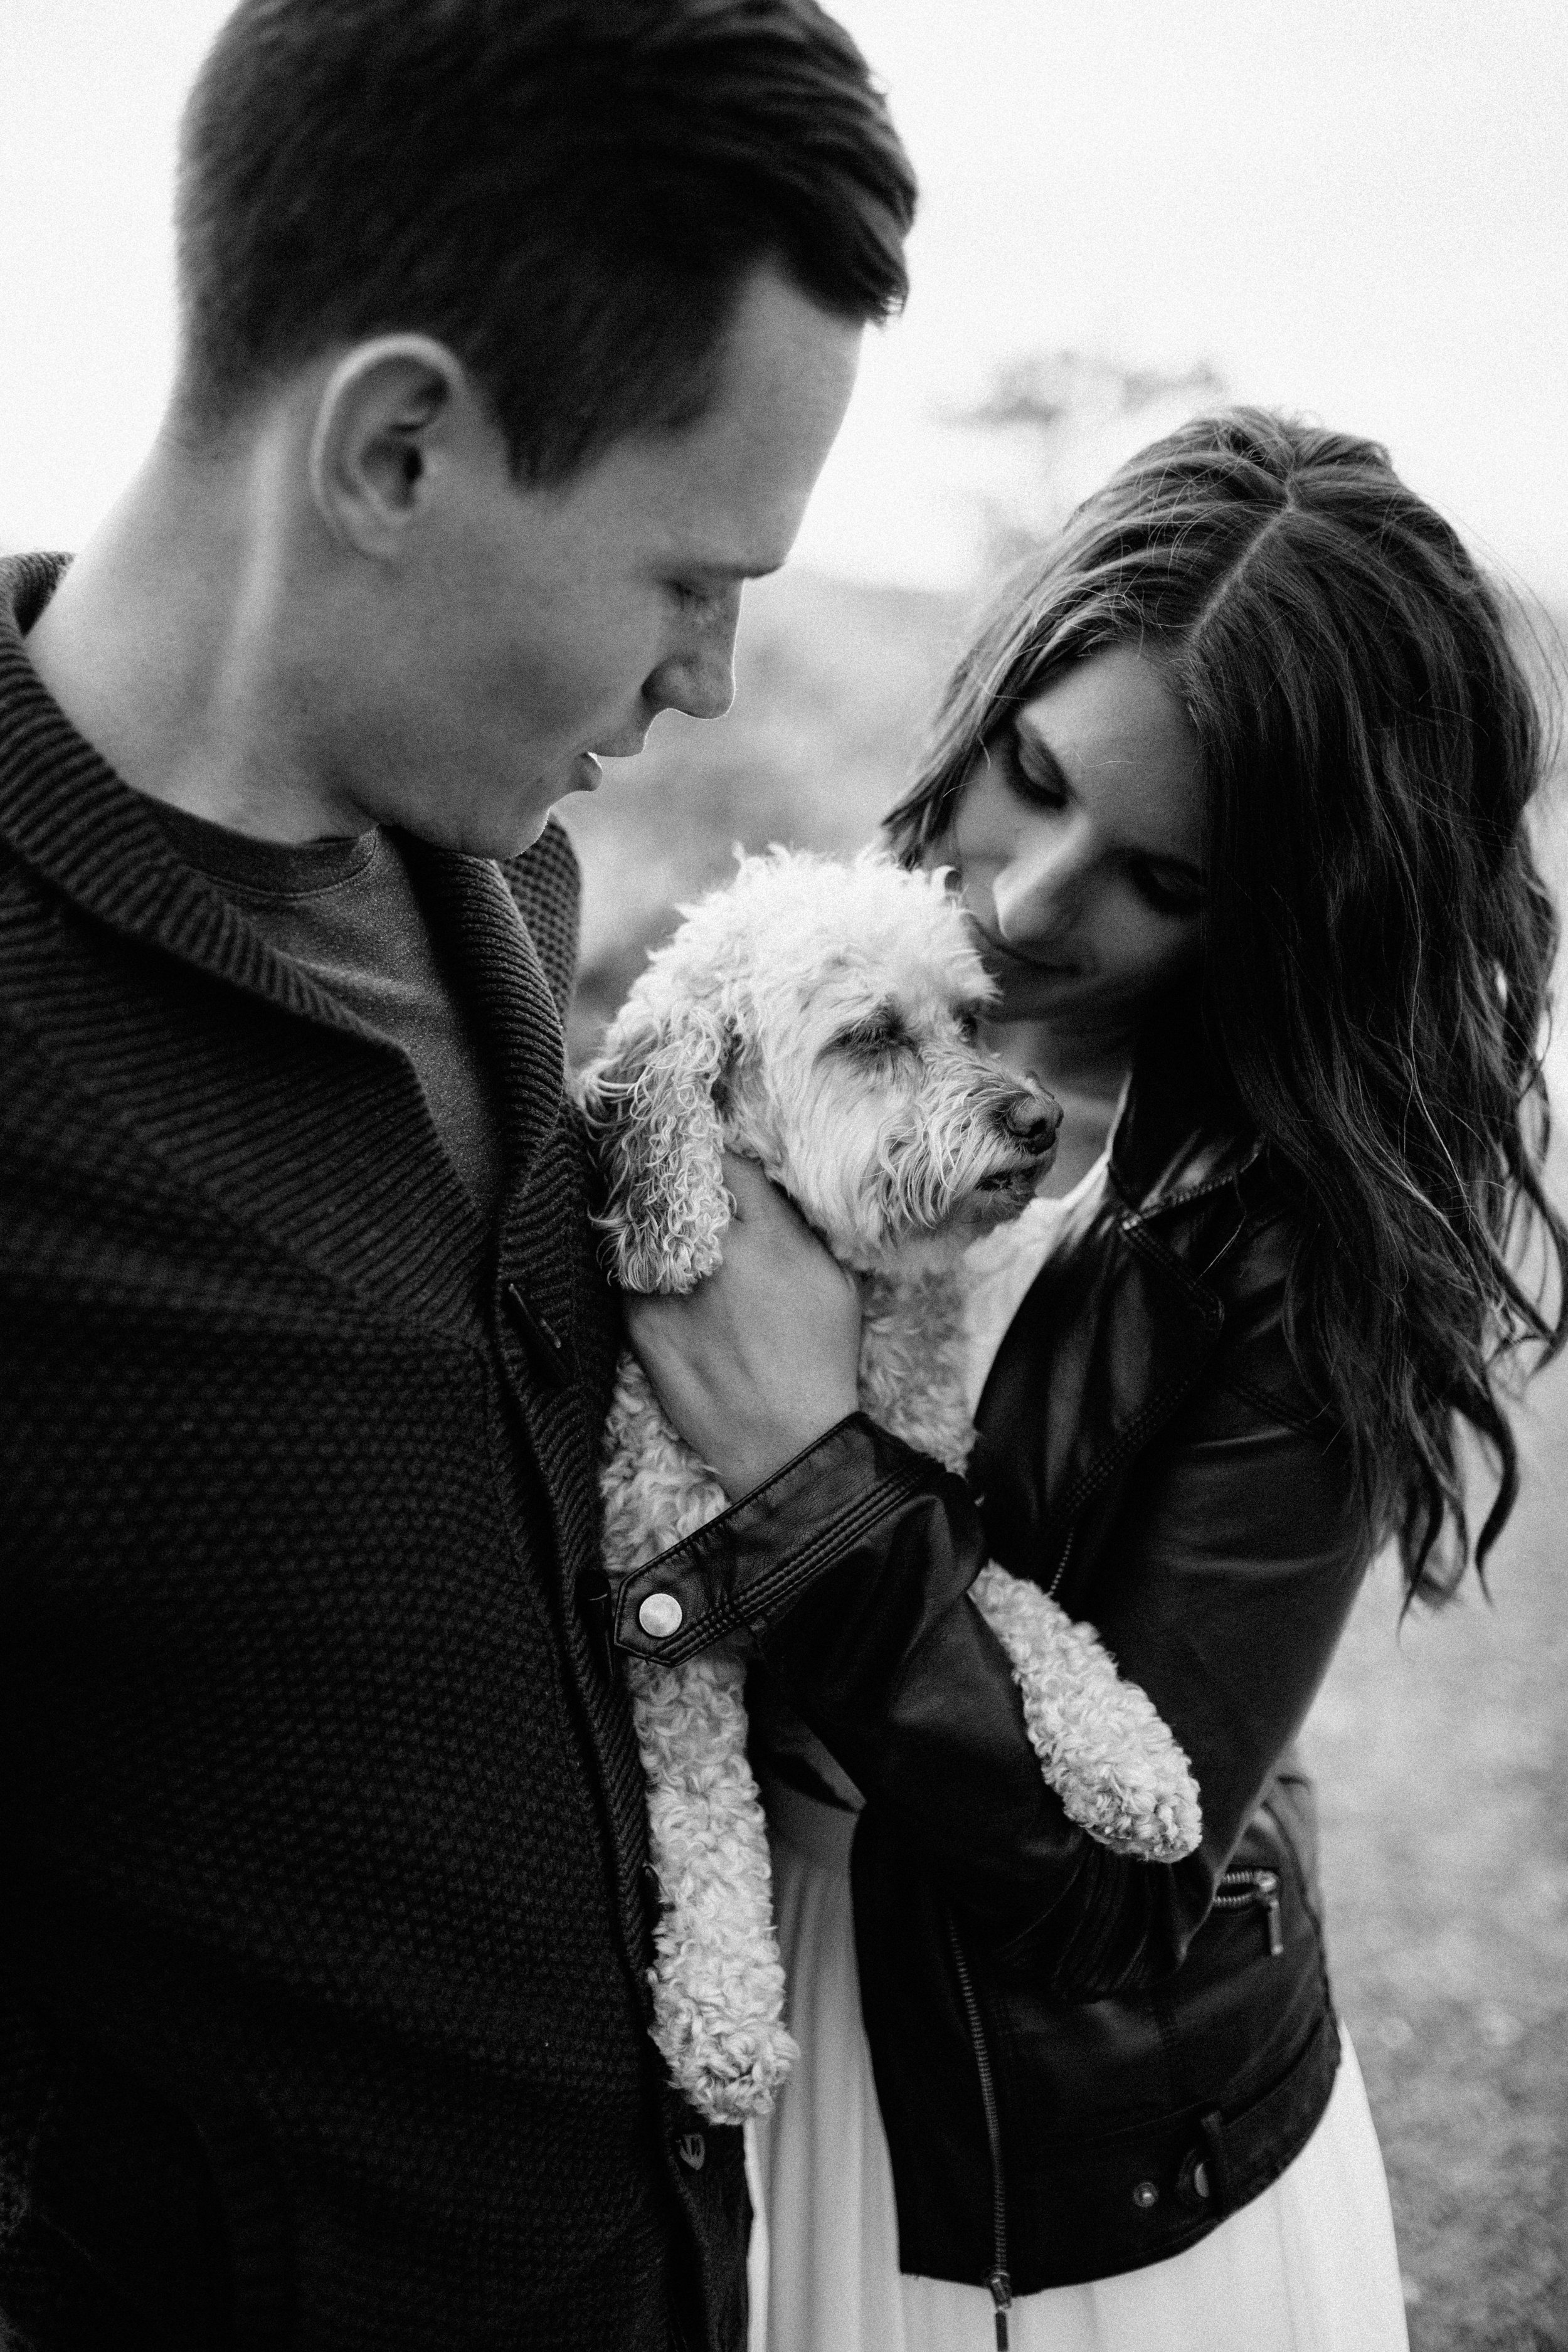 Candid, Authentic Engagement Photography at Lookout Mountain, Colorado